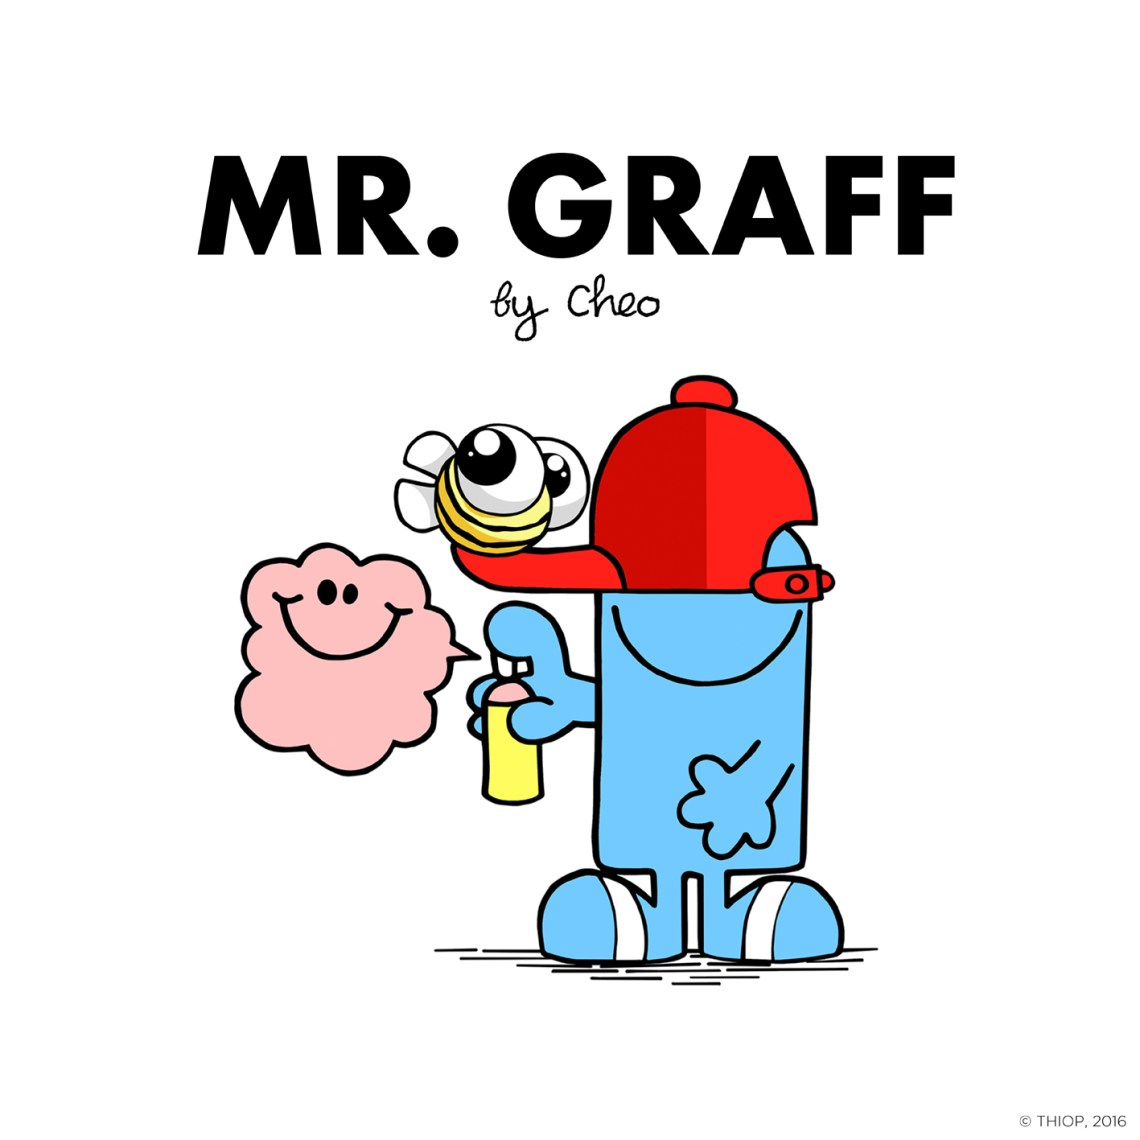 Introducing Mr Graff